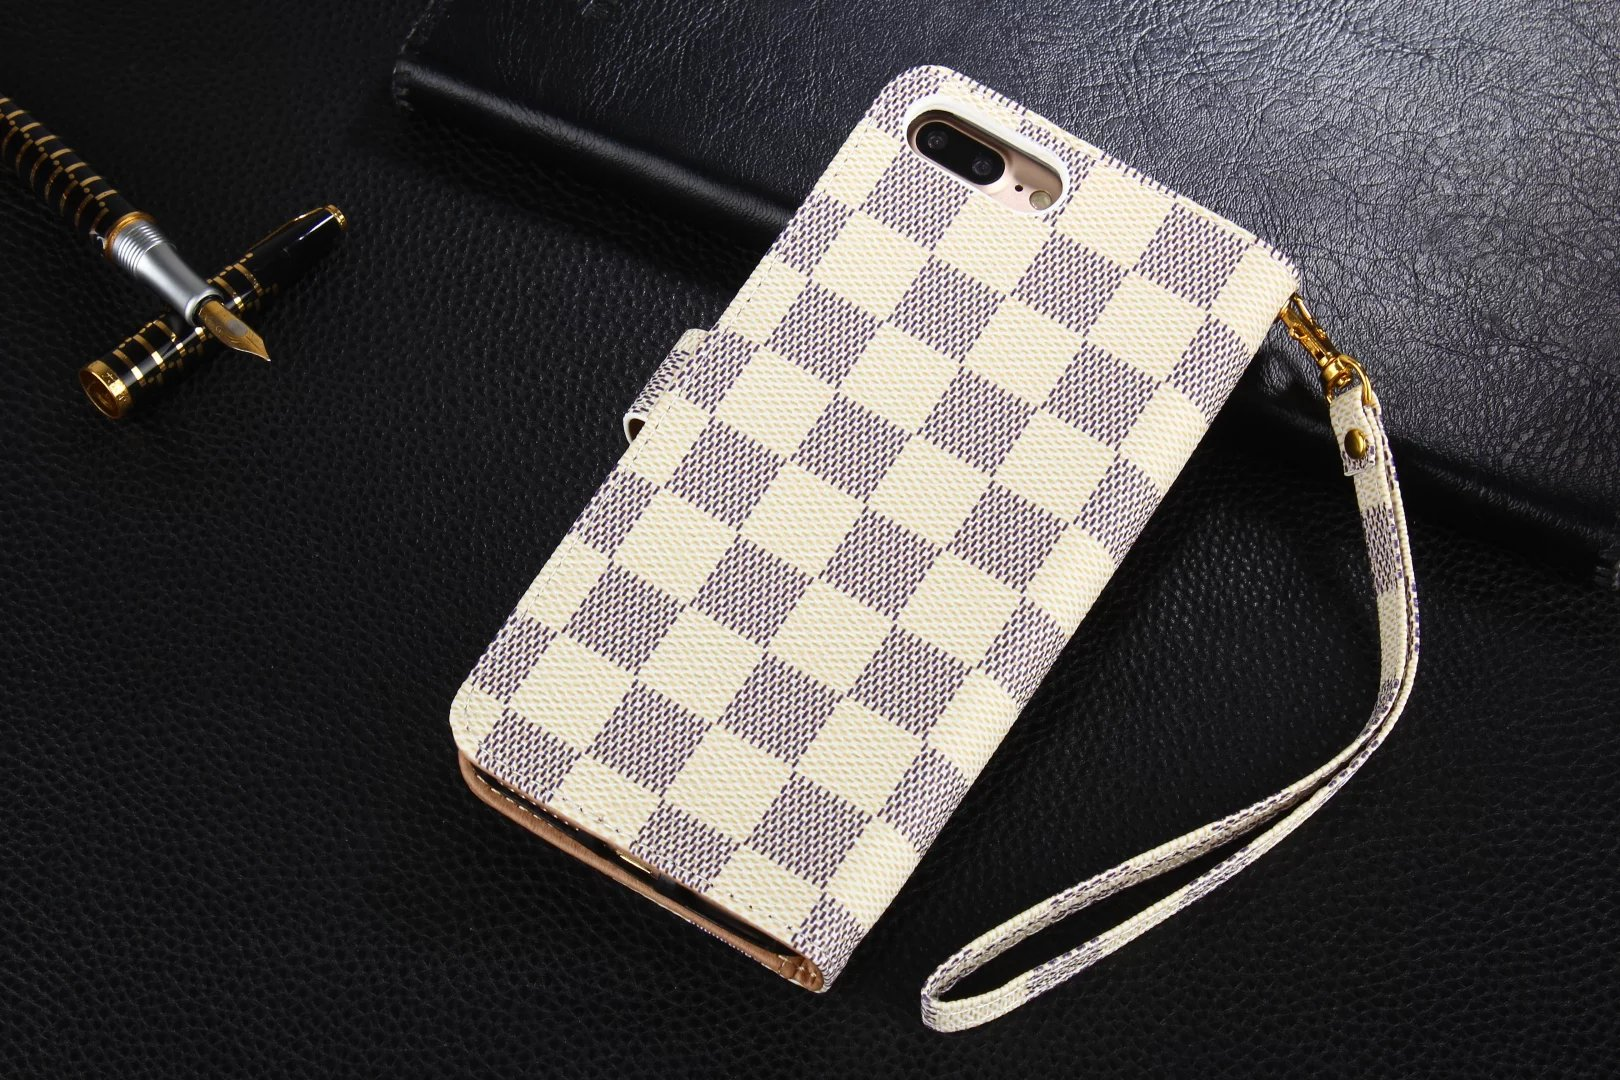 8 iphone cases best cover for iphone 8 Louis Vuitton iphone 8 case phone cover designs iphone 8 protective case apple store iphone 8 cases iphone 8 cases online mophie juicepack apple iphone 8 s case